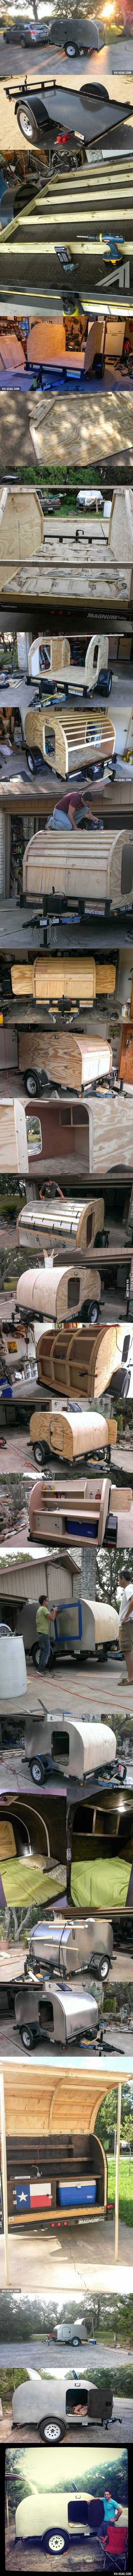 Awesome DIY camping trailer http://nzblokes.co.nz/awesome-diy-camping-trailer/